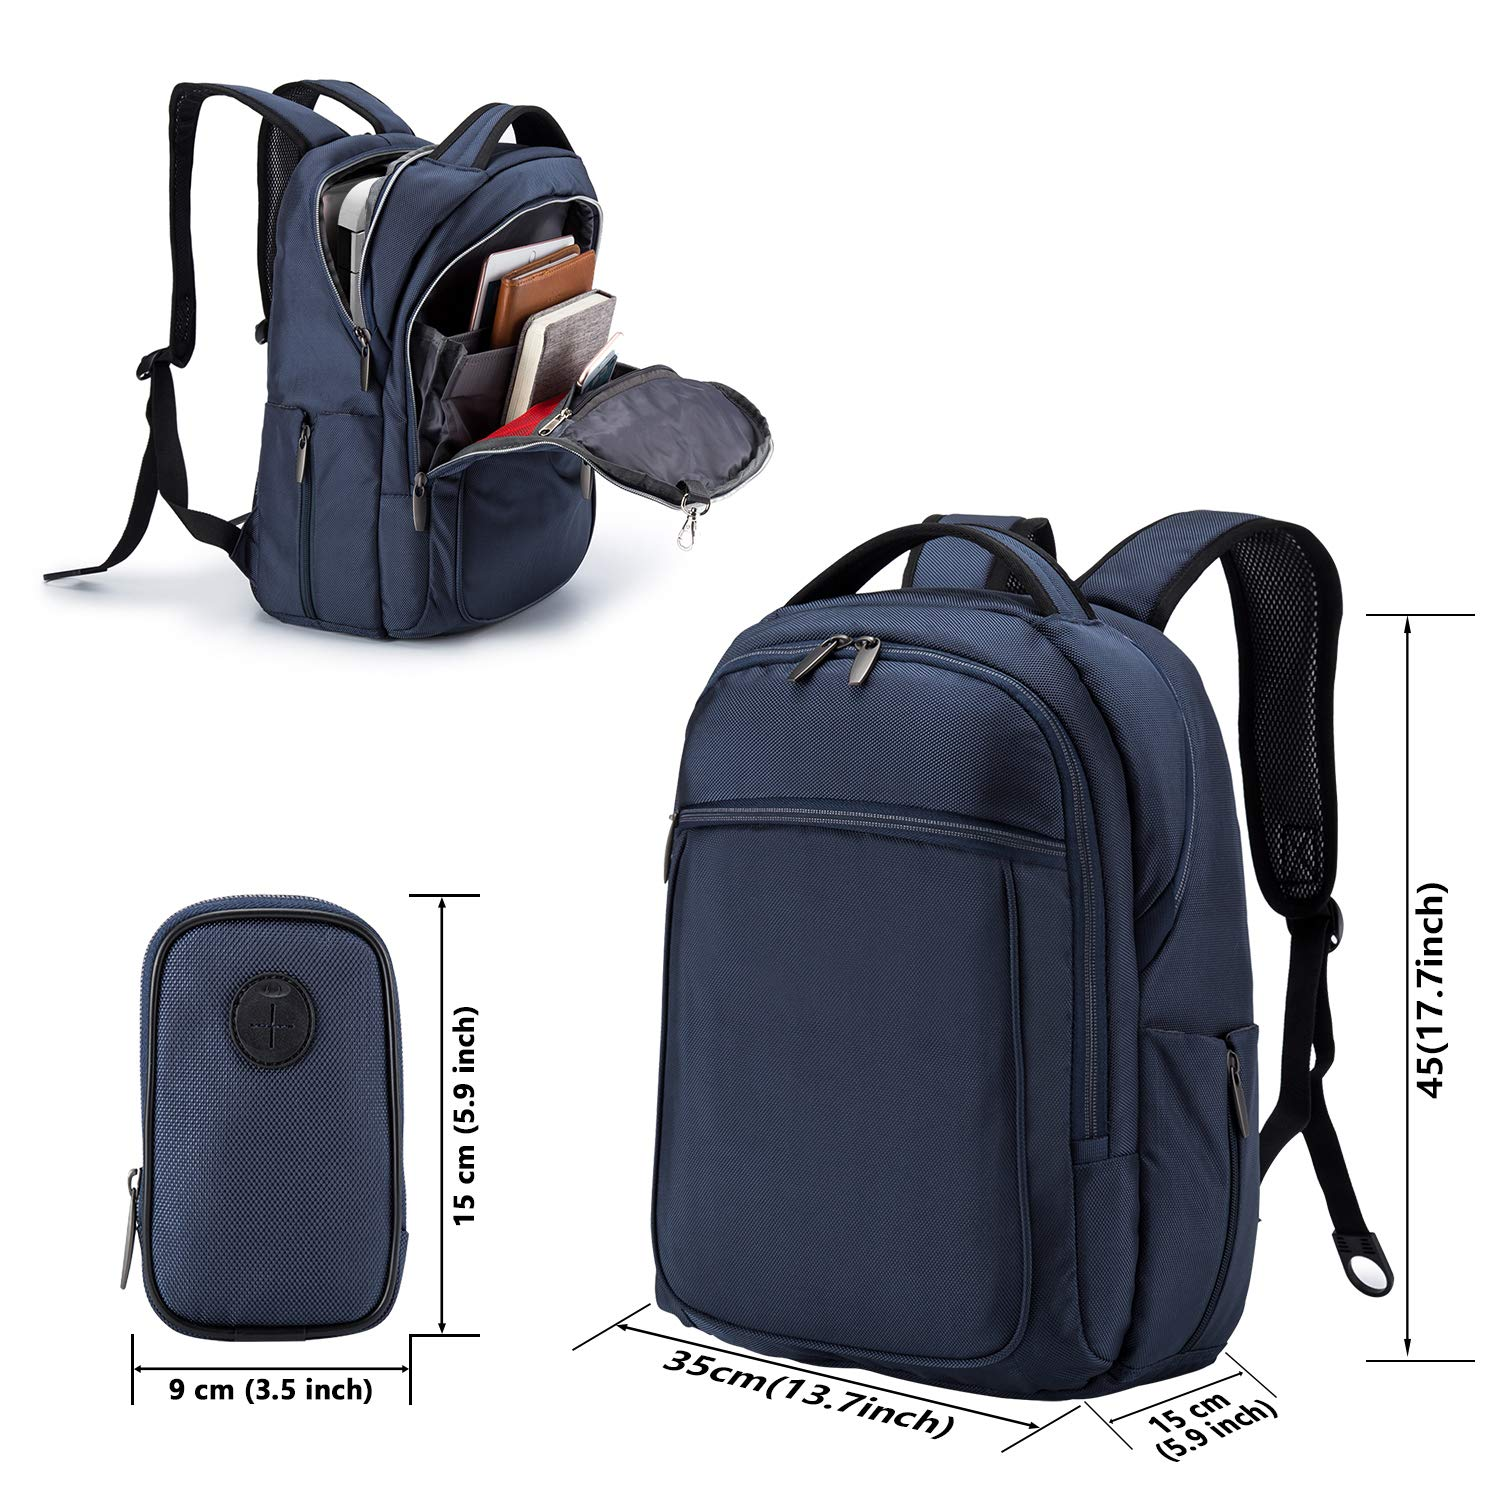 Wemk Laptop Backpack, Business Backpack, Travel Computer Backpack for Women & Men, Water Resistant College School Computer Bag with a Little Bag, Fits 14.1 Inch Laptop& Notebook (Blue) by Wemk (Image #2)